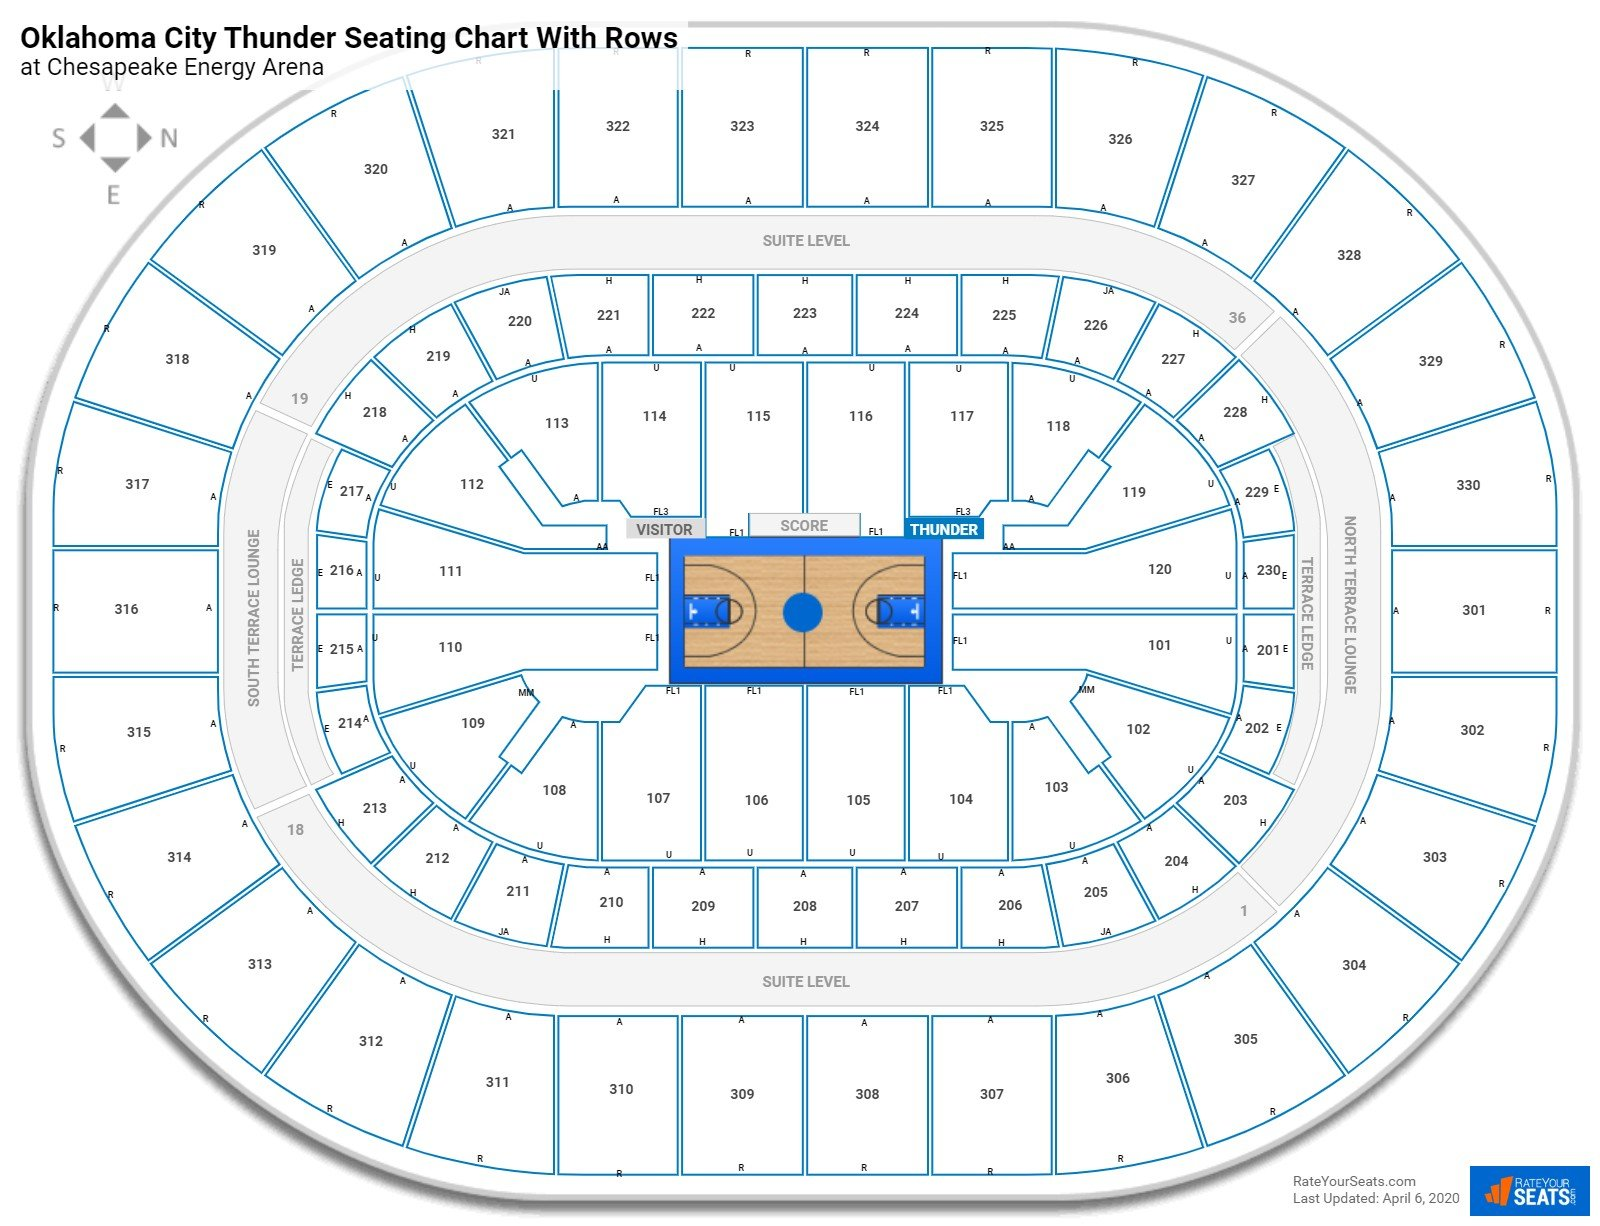 Chesapeake Energy Arena seating chart with rows basketball